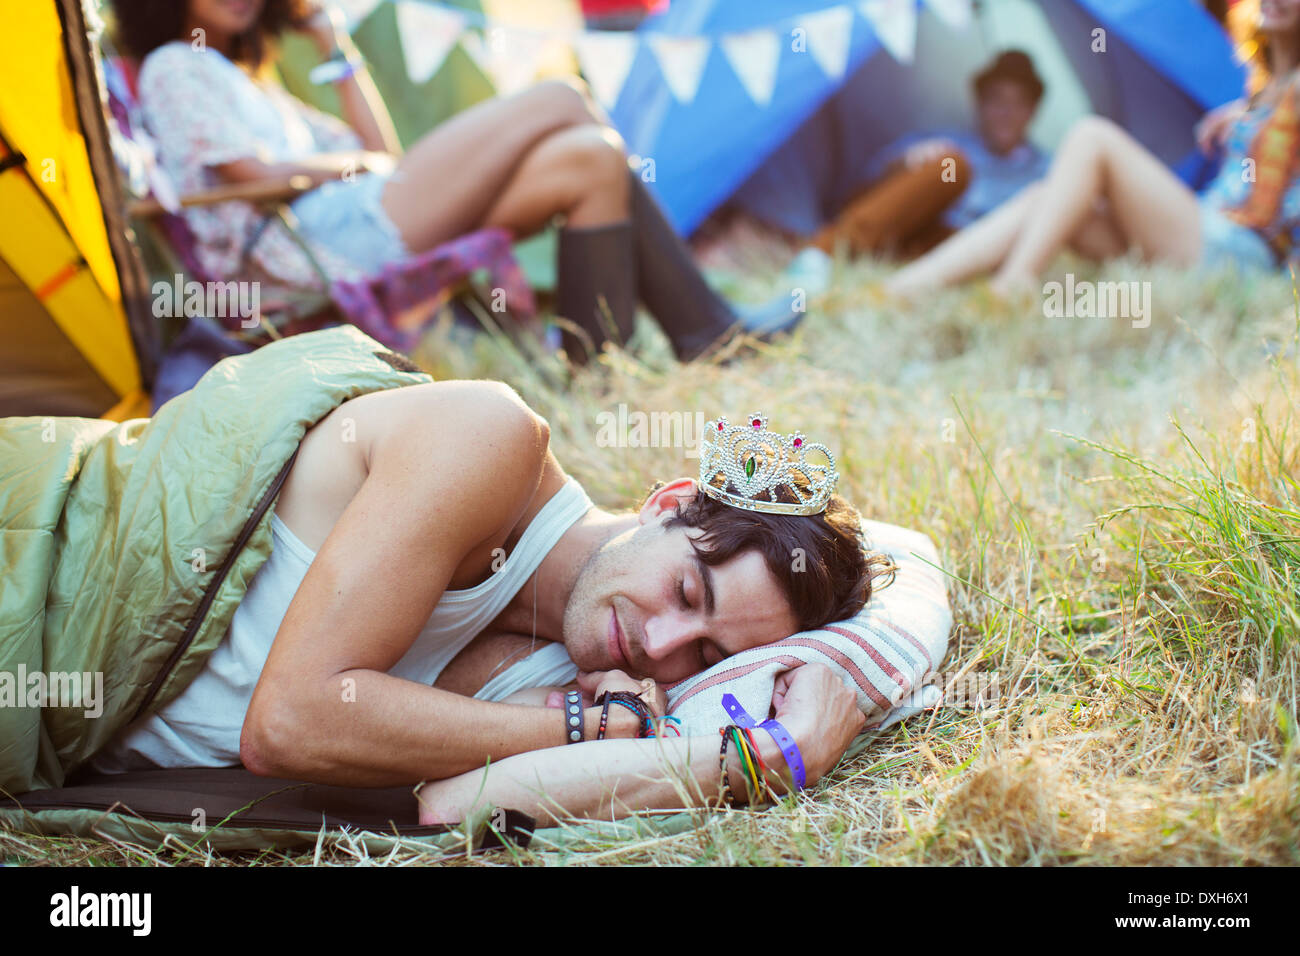 Man in tiara sleeping in sleeping bag outside tents at music festival - Stock Image